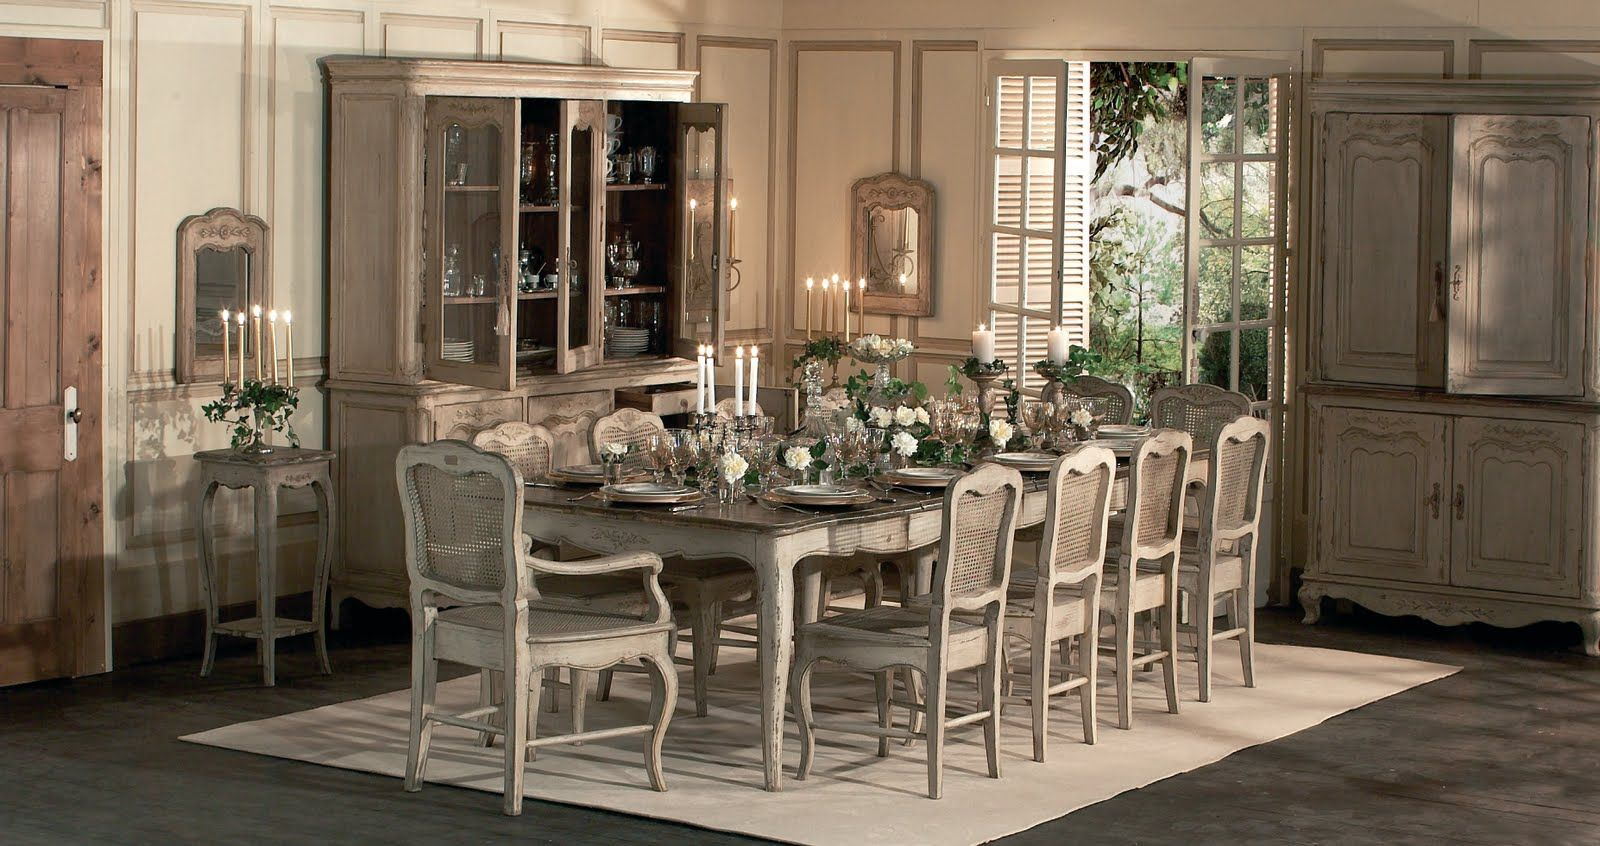 Captivating Country Dining Room Designs To Inspire You Luxury French Design With Furniture